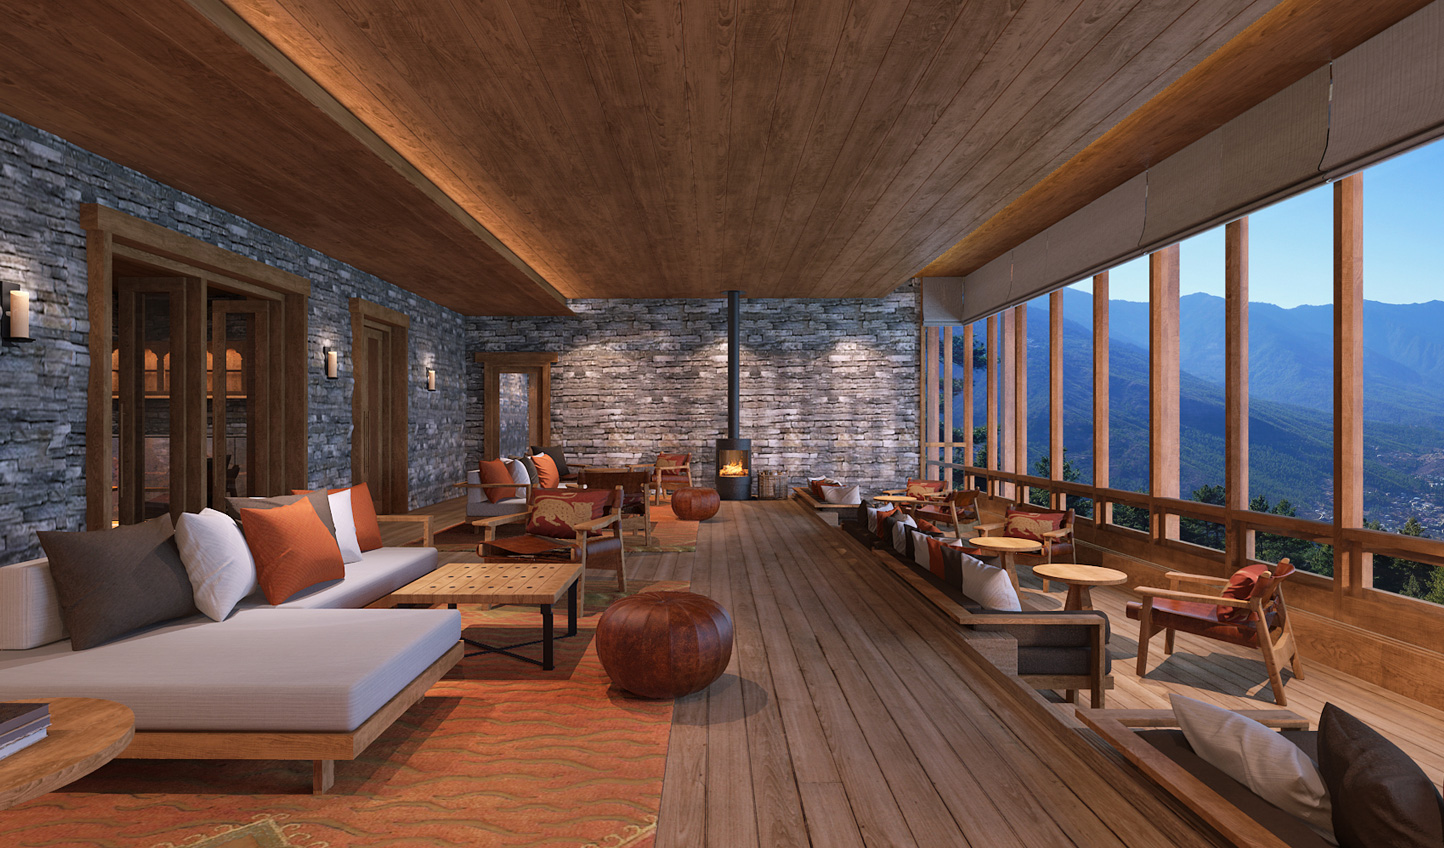 Soak in the views from Six Senses Paro